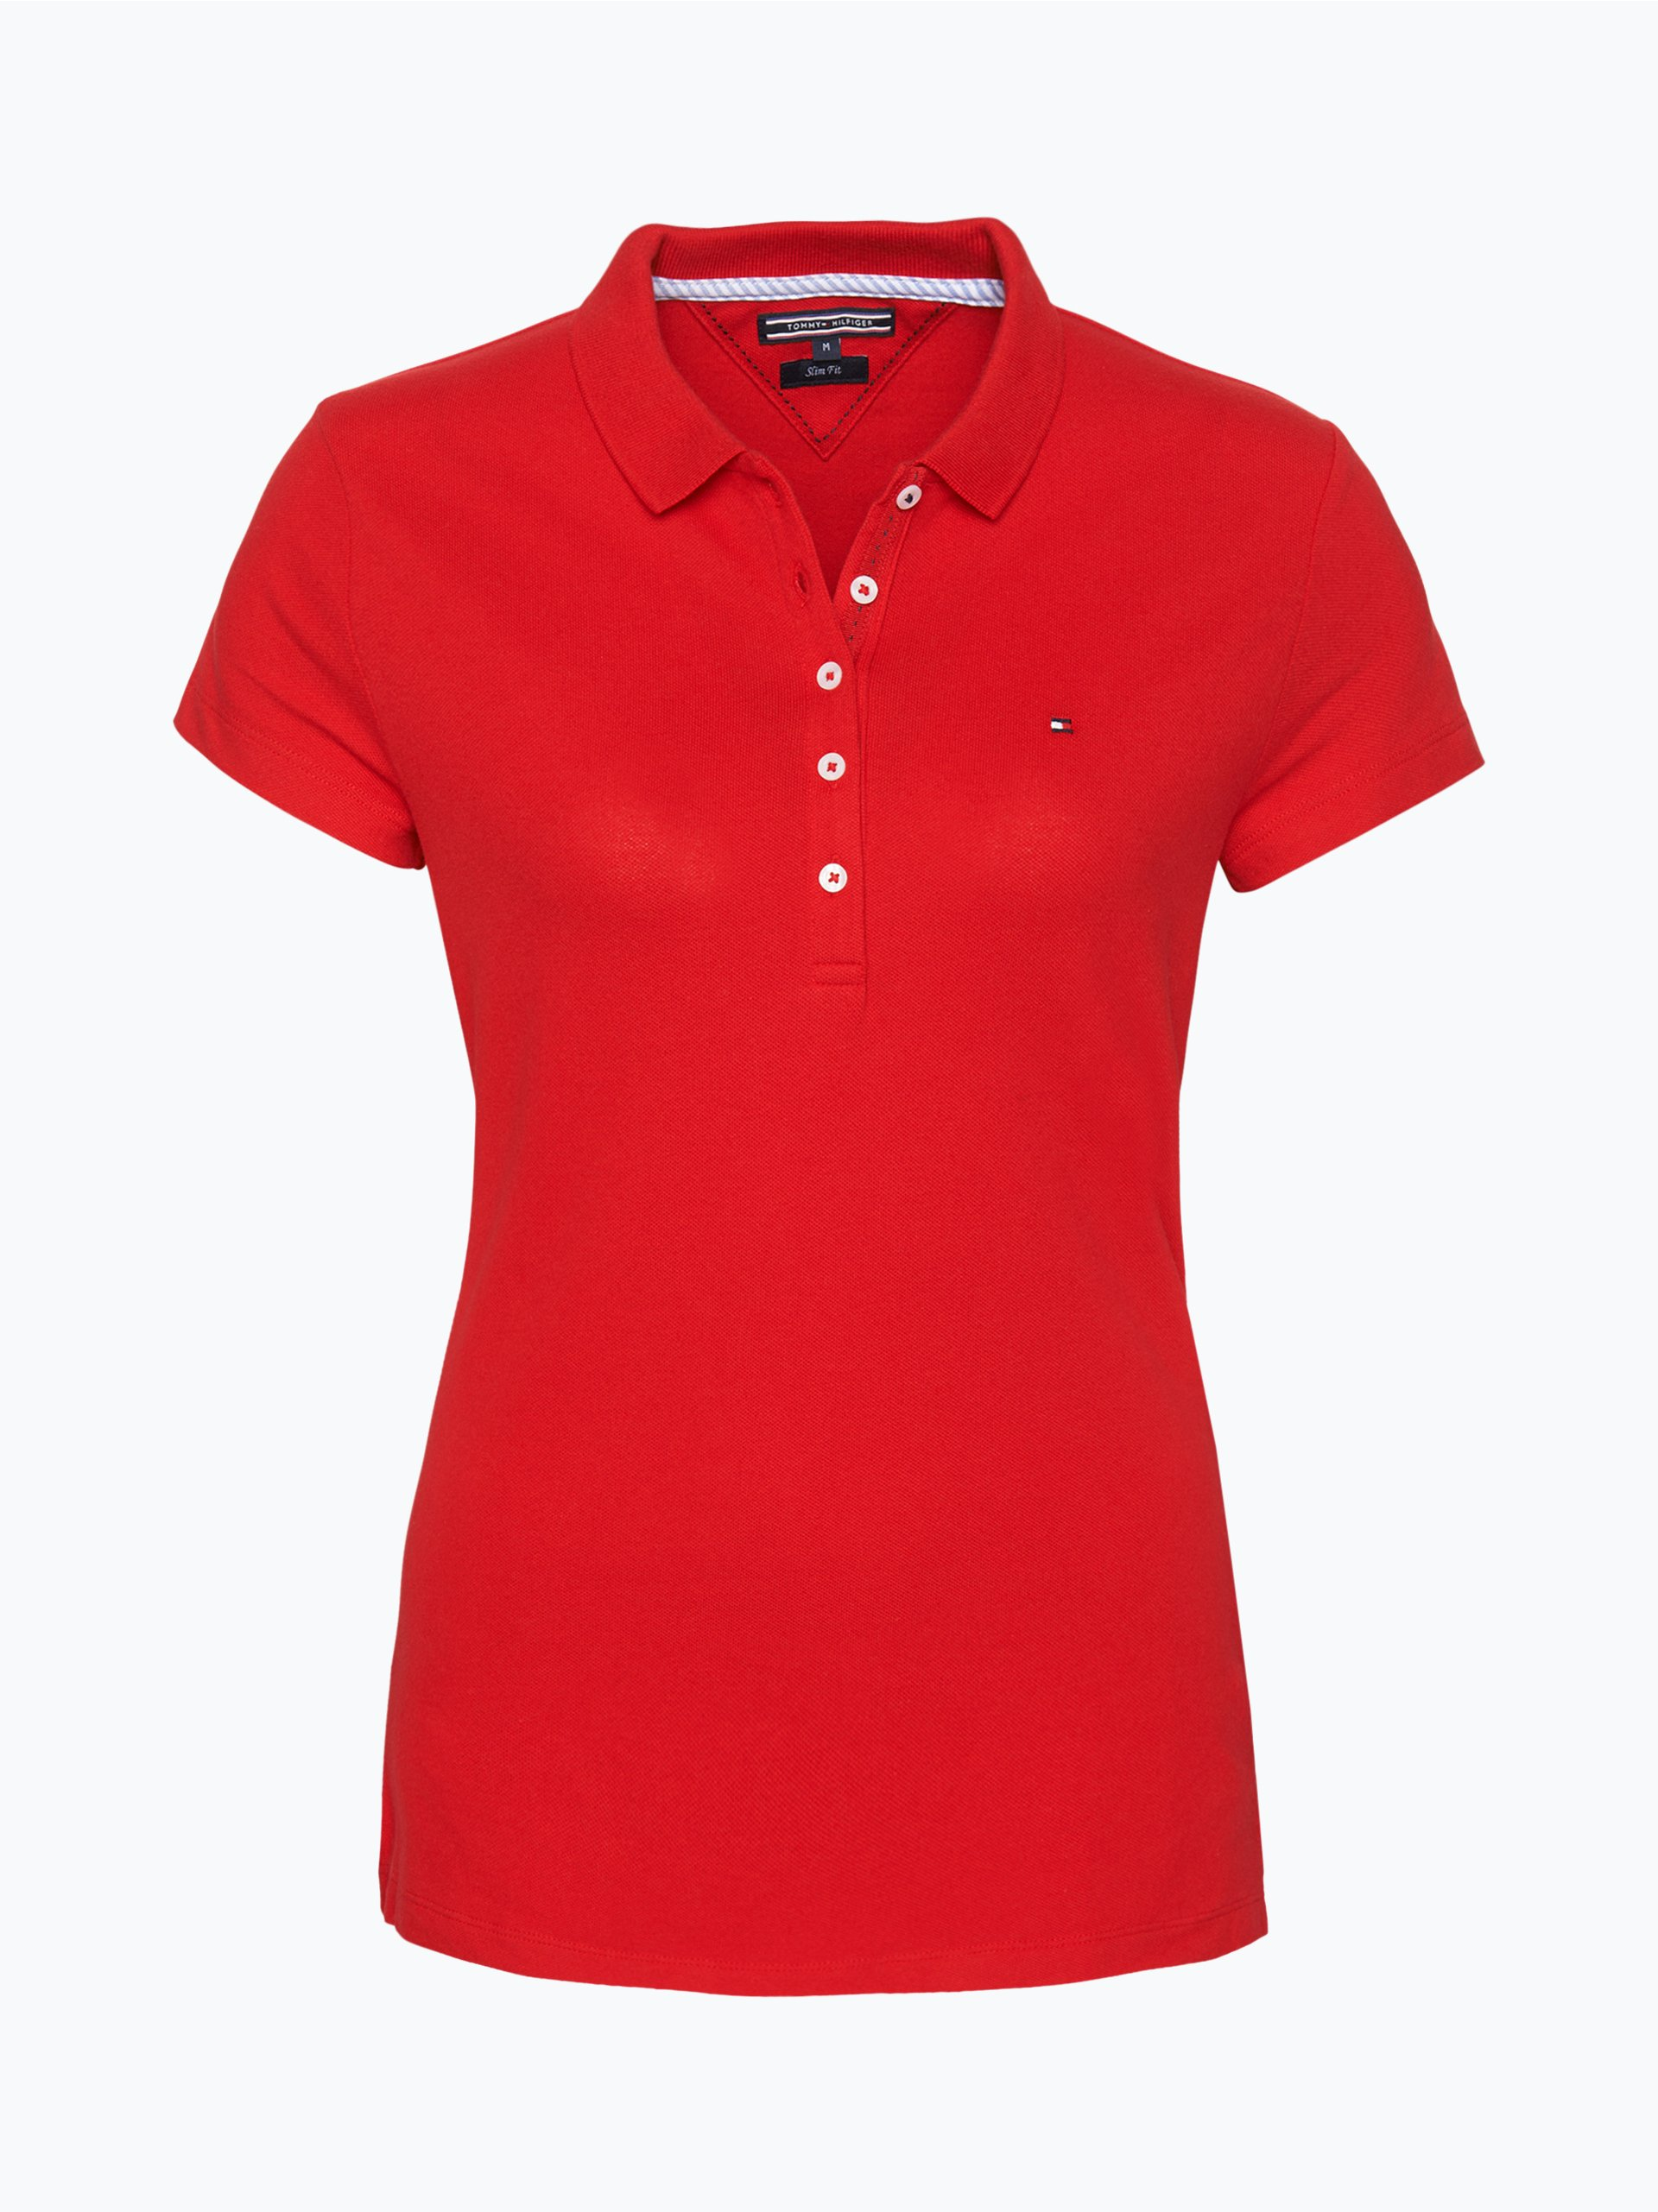 tommy hilfiger damen poloshirt new chiara rot uni online kaufen peek und cloppenburg de. Black Bedroom Furniture Sets. Home Design Ideas